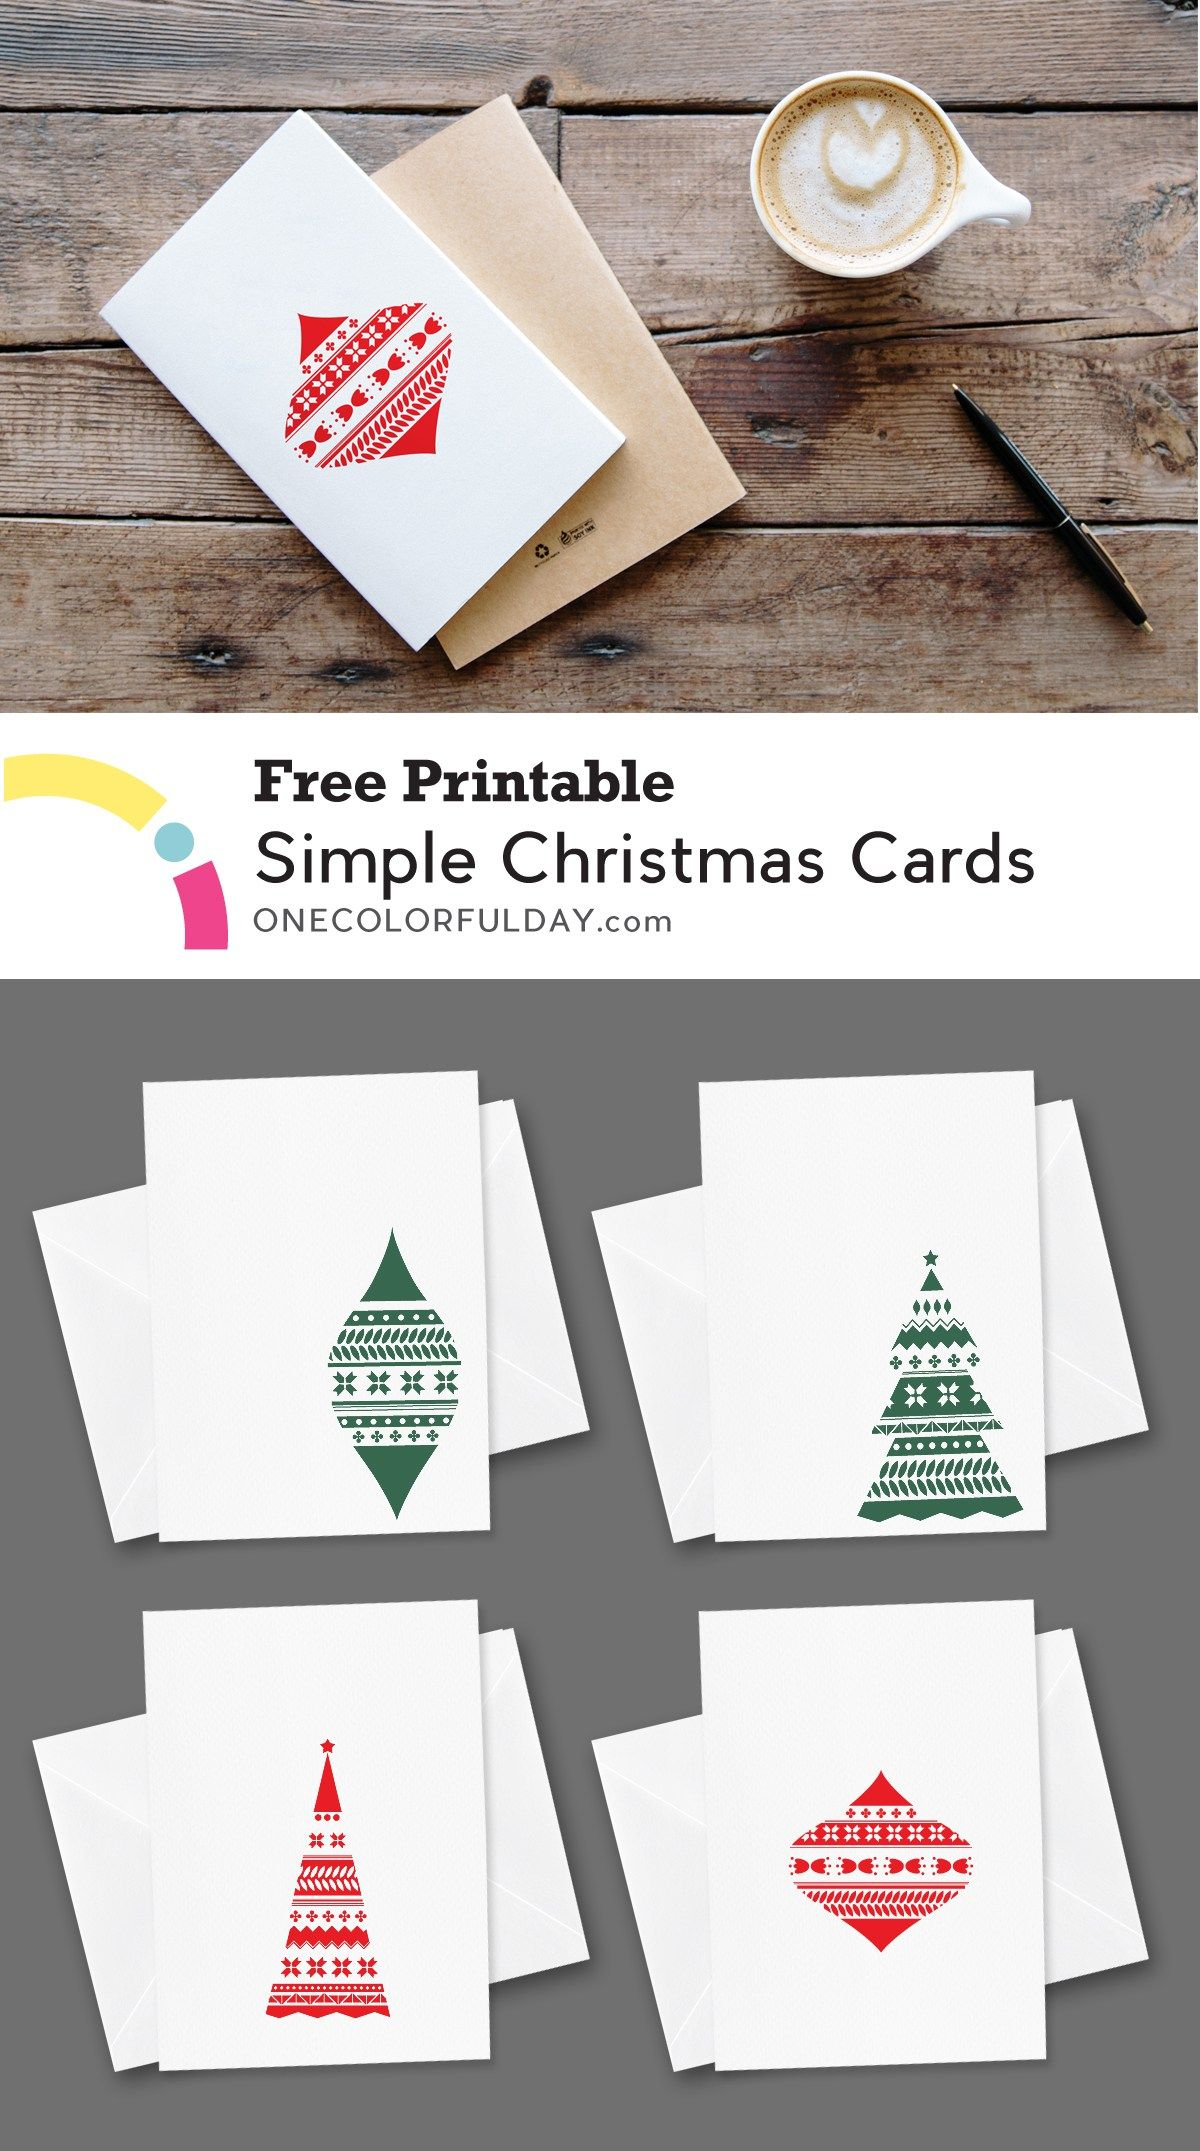 Free printable christmas cards onecolorfulday free